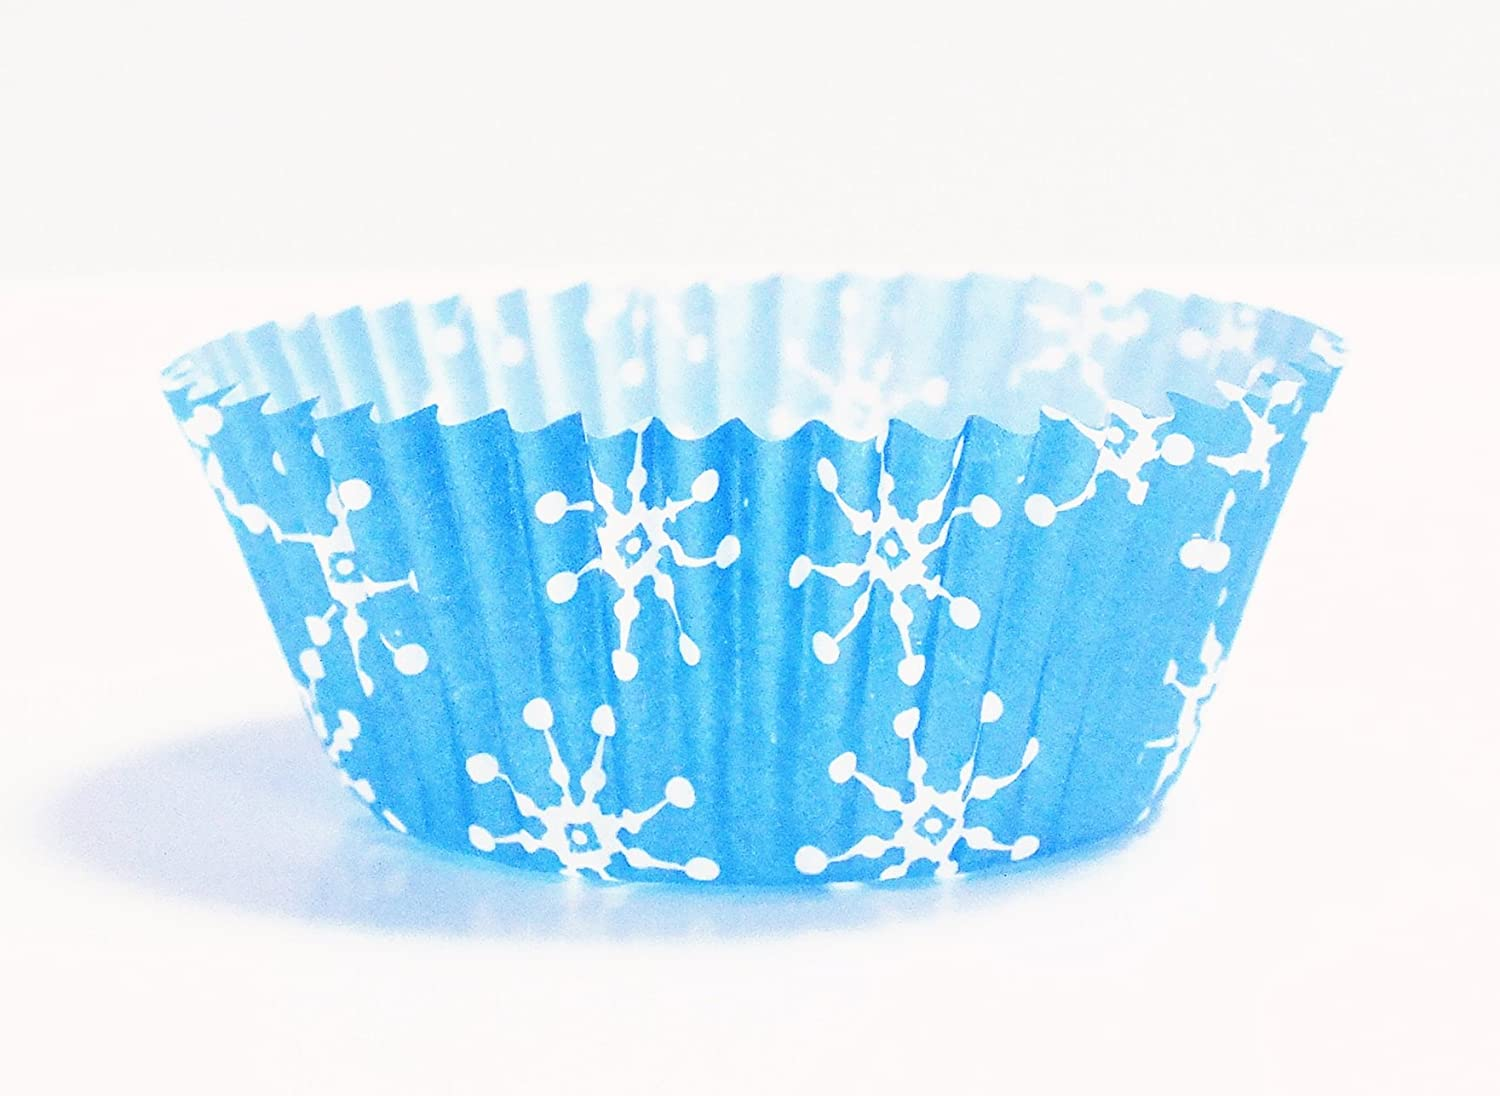 Knights Bridge Global BC752 PME Snowflakes Cupcake Baking Cups Standard Knightsbridge Global Ltd. 60 Pack